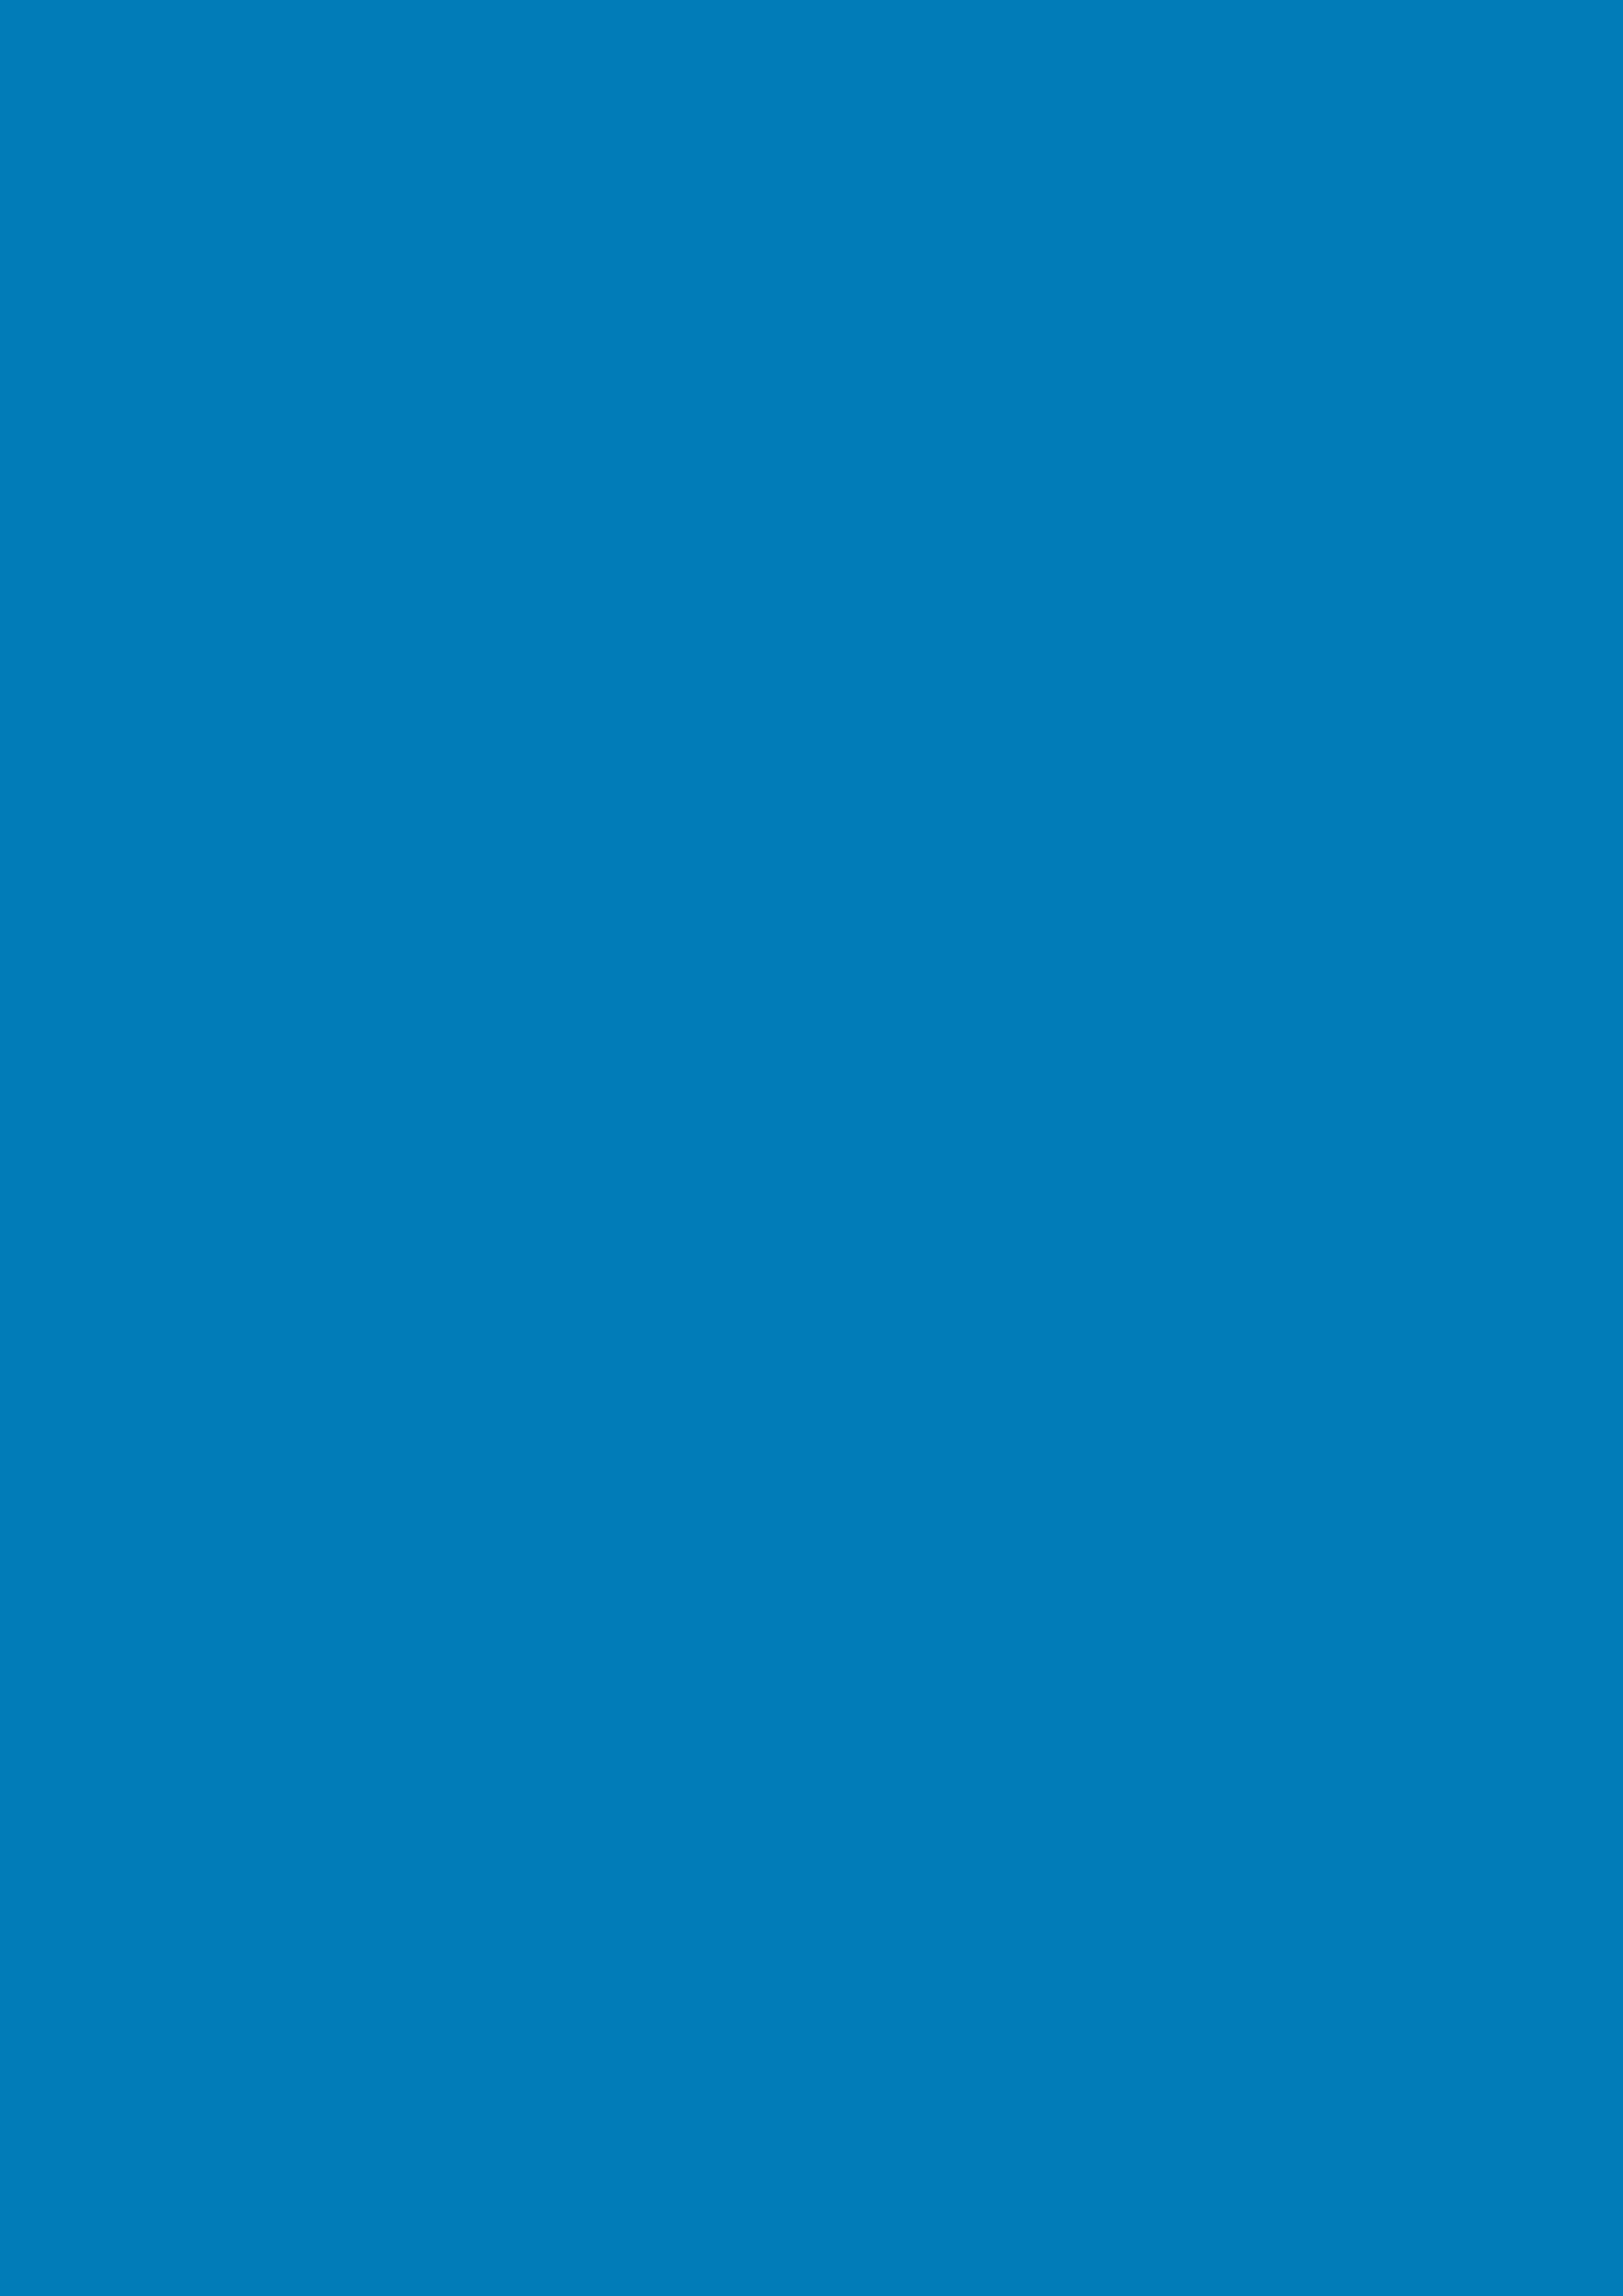 2480x3508 Star Command Blue Solid Color Background